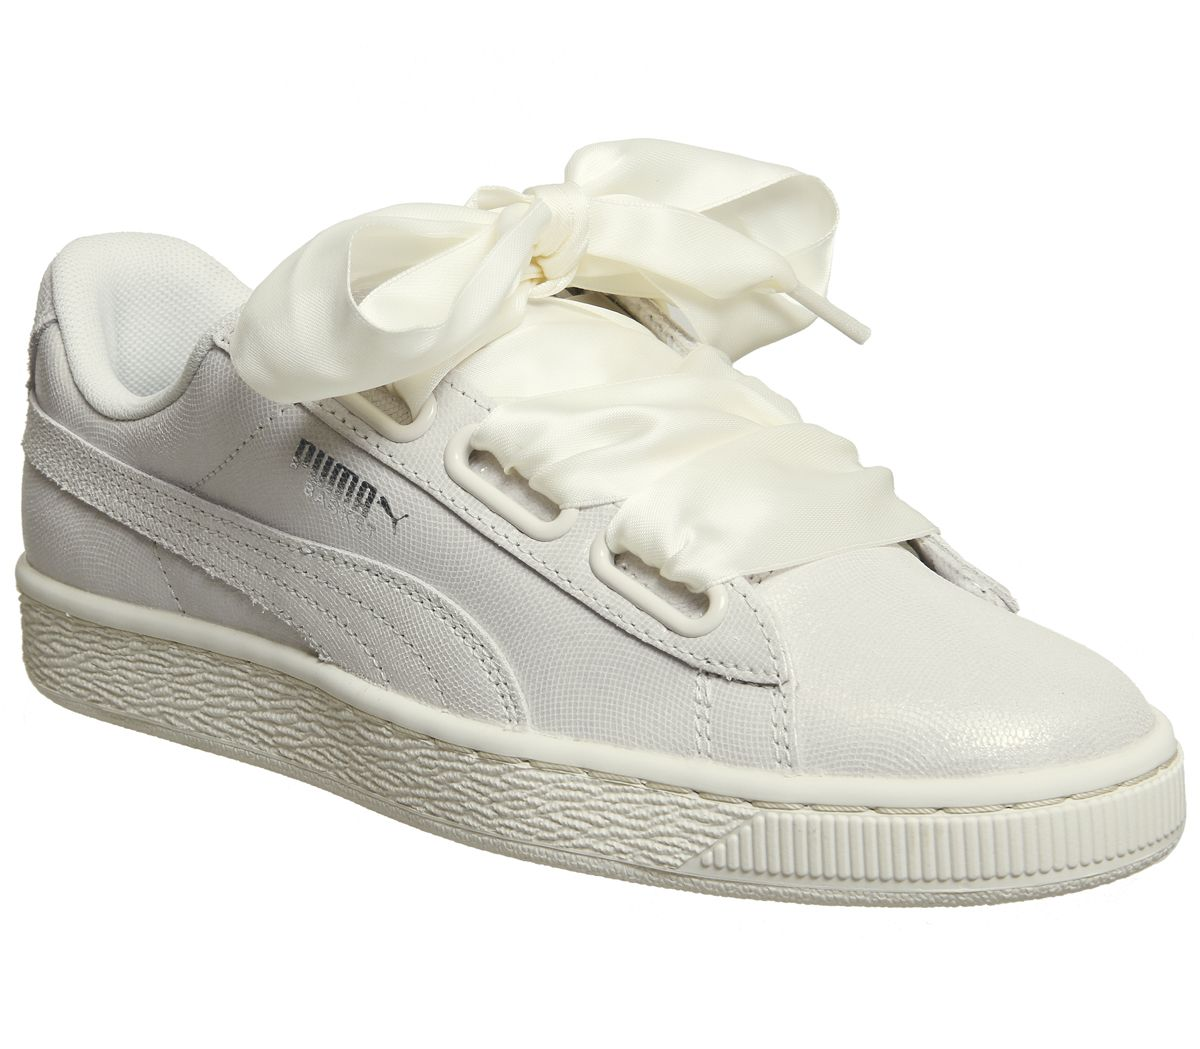 c3a46a9b4eec Puma Basket Heart Trainers Puma White Shine - Sale